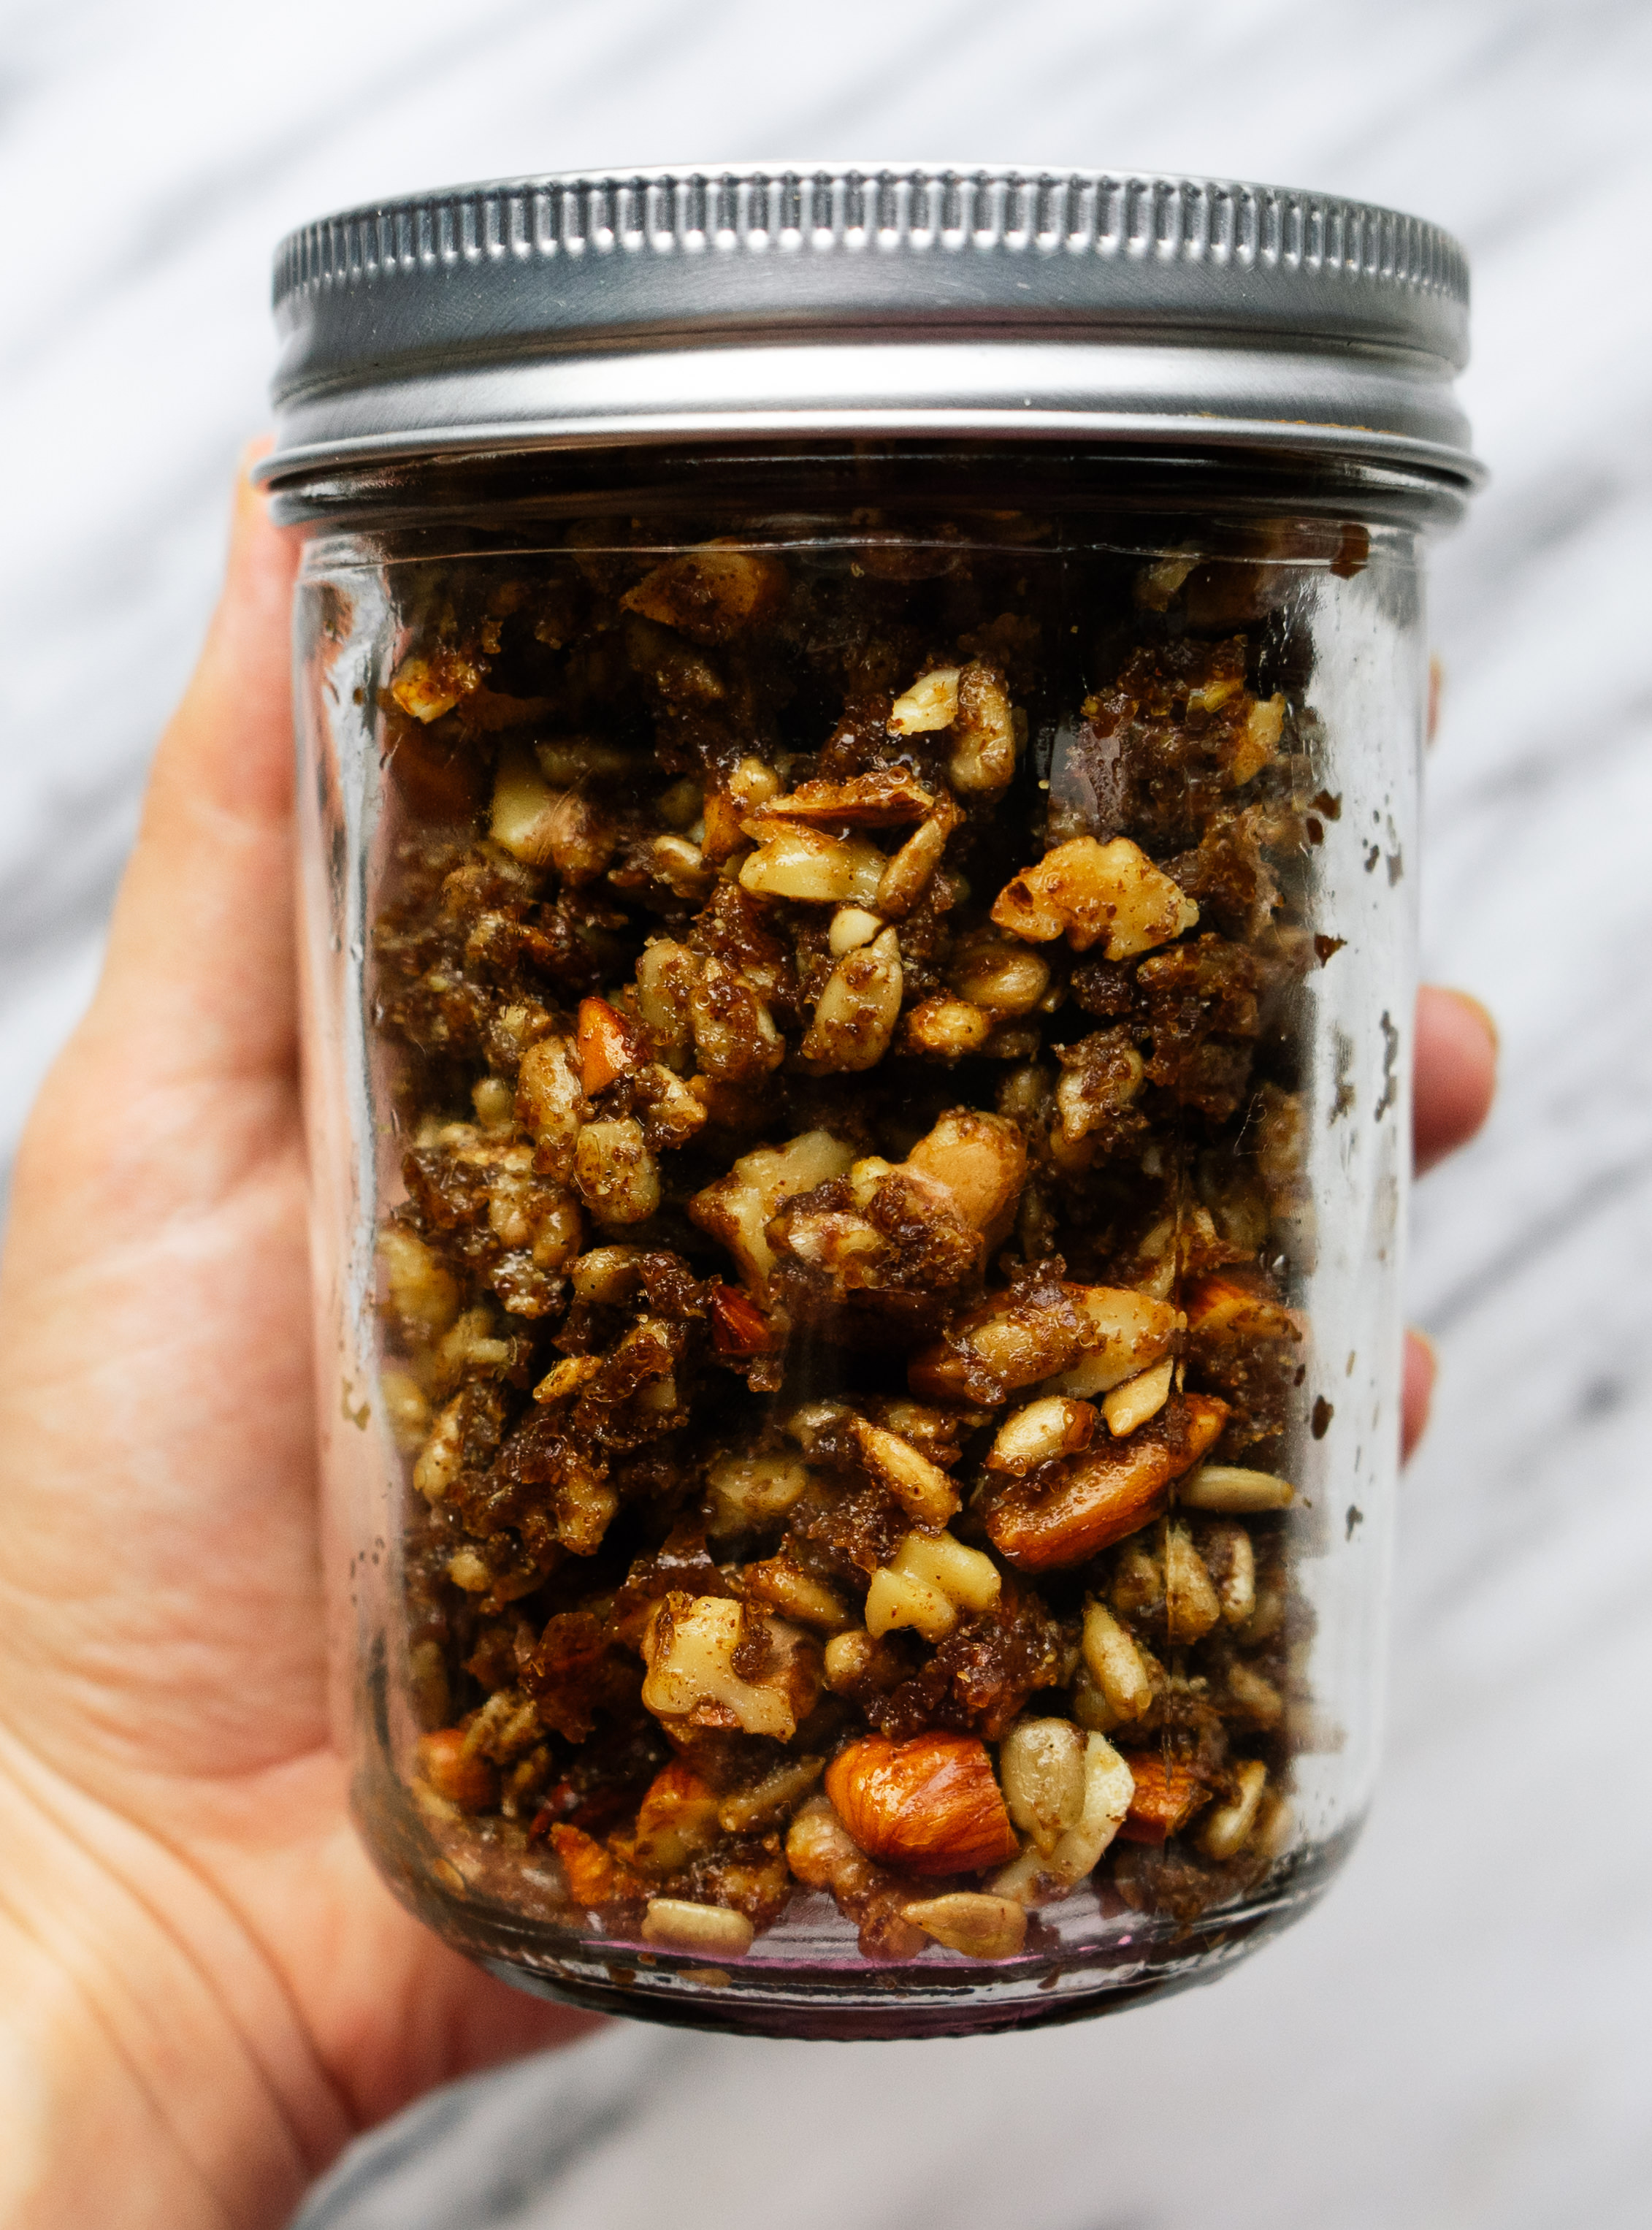 Pumpkin spice grain free granola is an easy and healthy recipe to get you into the fall mood. Bake a batch of this paleo granola and crumble it over yogurt or enjoy as a healthy snack on the go.